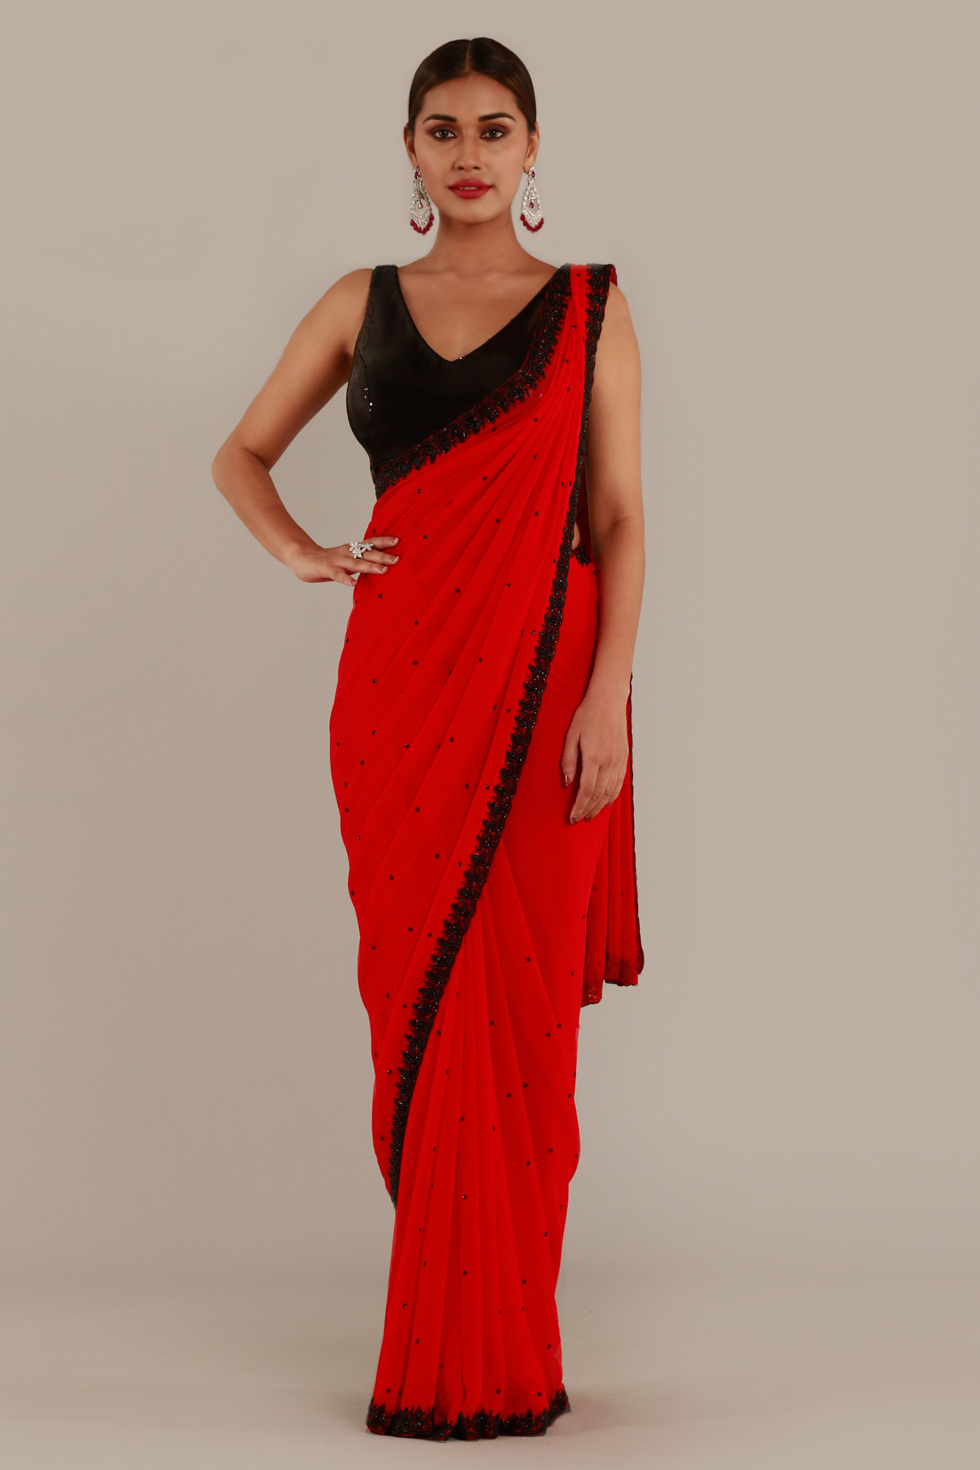 Bright red classic saree with black border and stone work and contrast black sequinned choli with tie up back